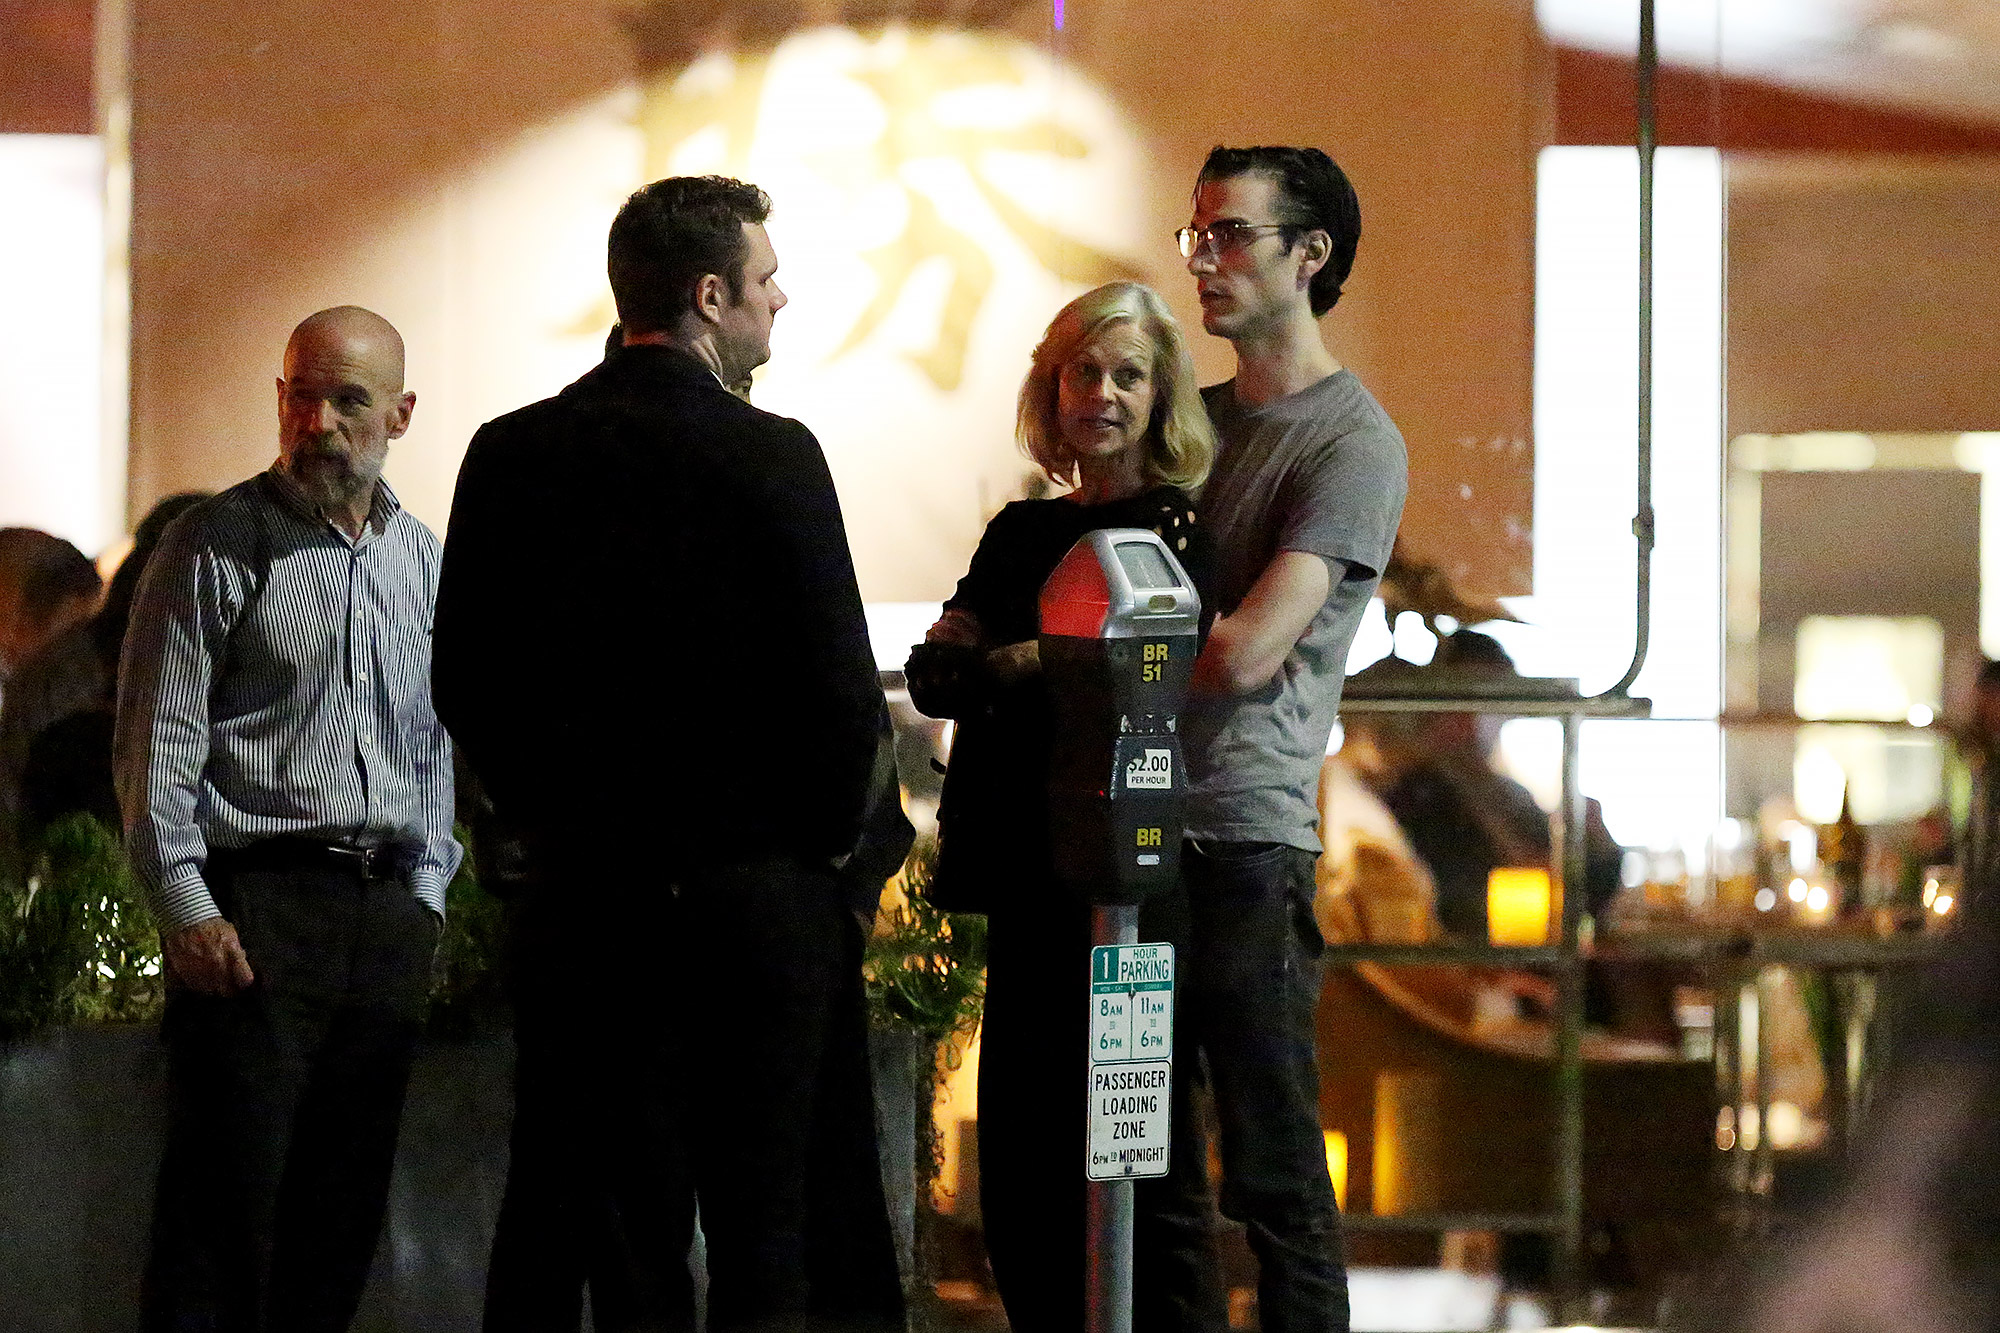 Cooper Hefner looks somber and stands alone after meal with family in Brentwood, CA.